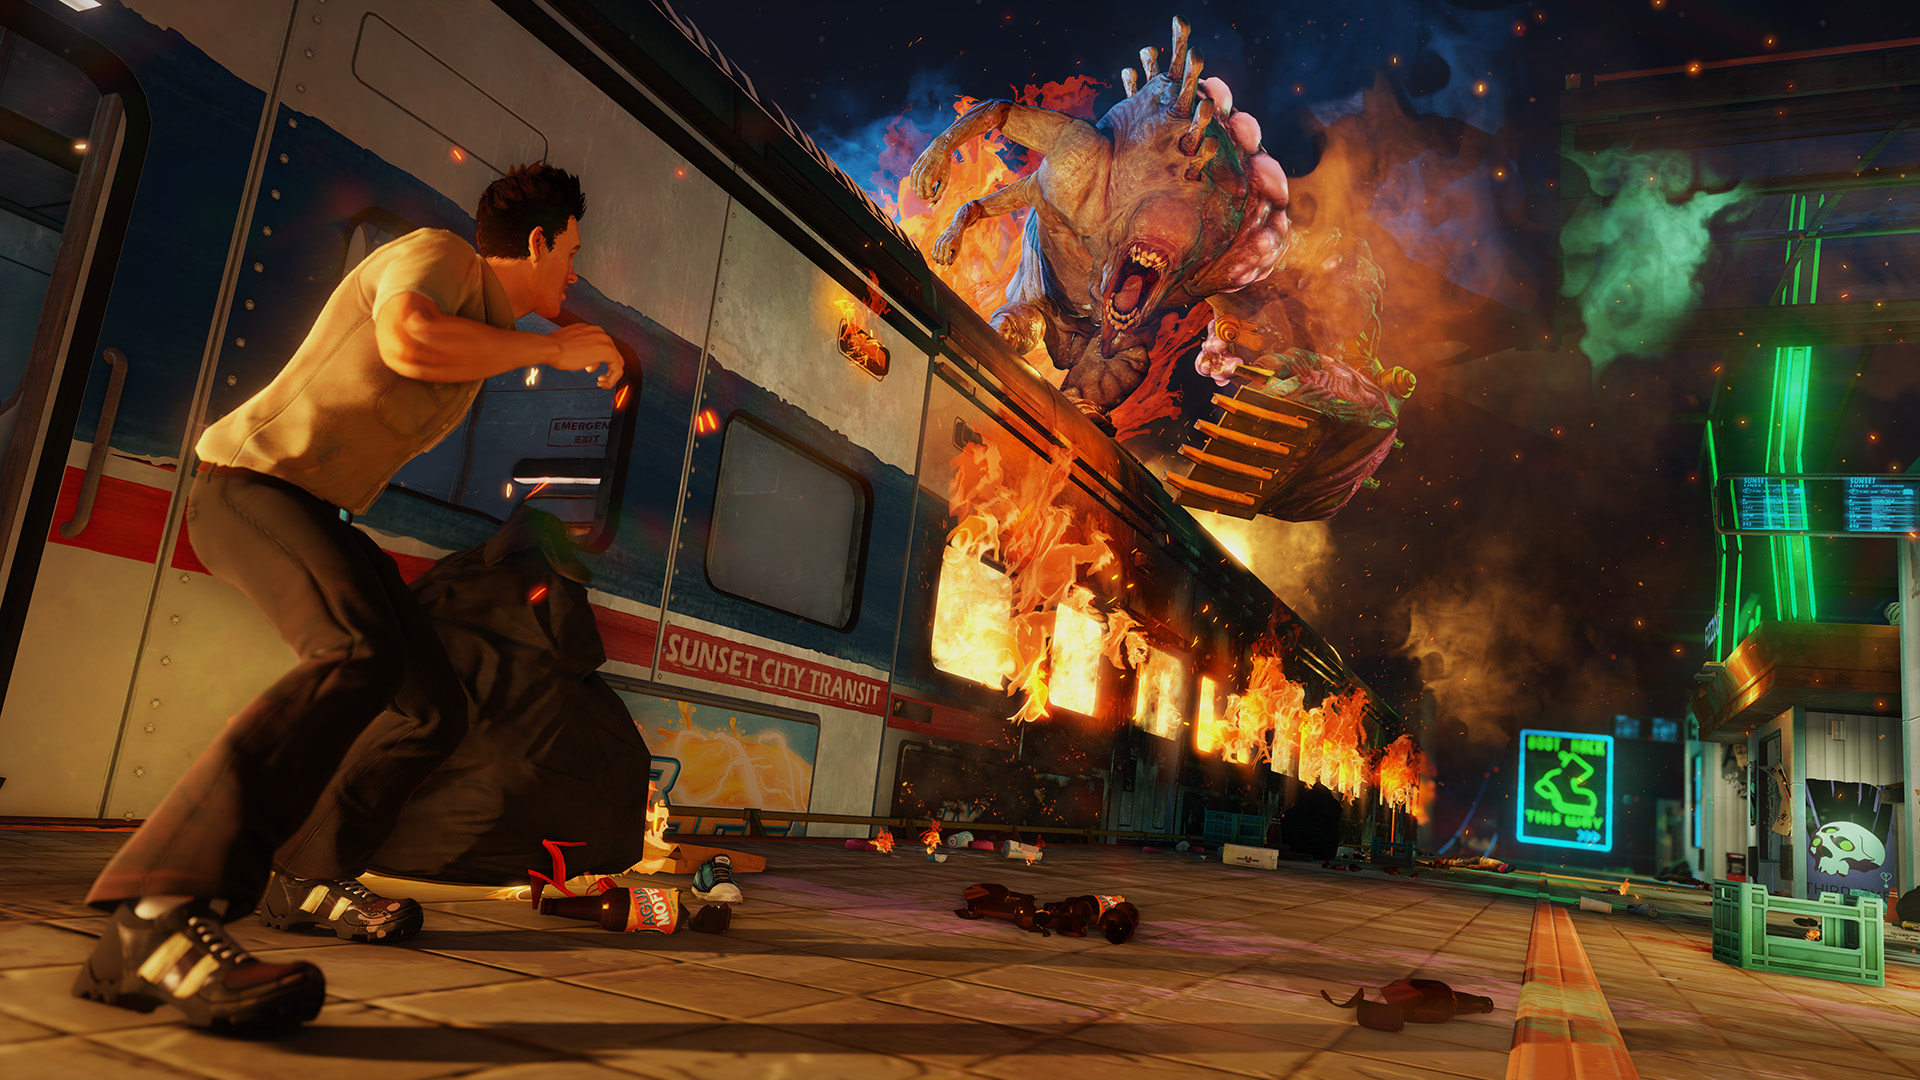 I played the first two hours of Sunset Overdrive and I liked it a lot